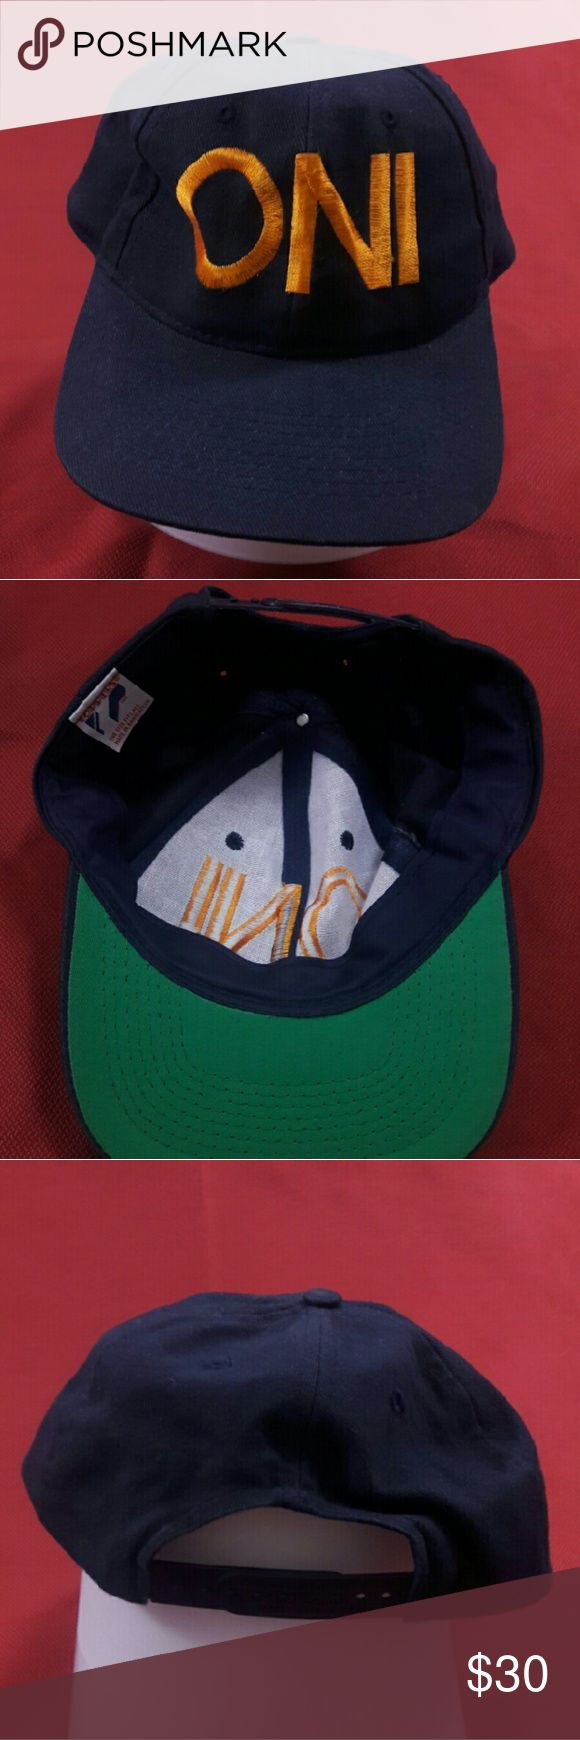 Naval Intelligence Baseball Cap ONI Very Good Condition!  One Size. Adjustable.  Please, review pics. Contact me if you have questions. Smoke/Pet free home. Toppers Accessories Hats